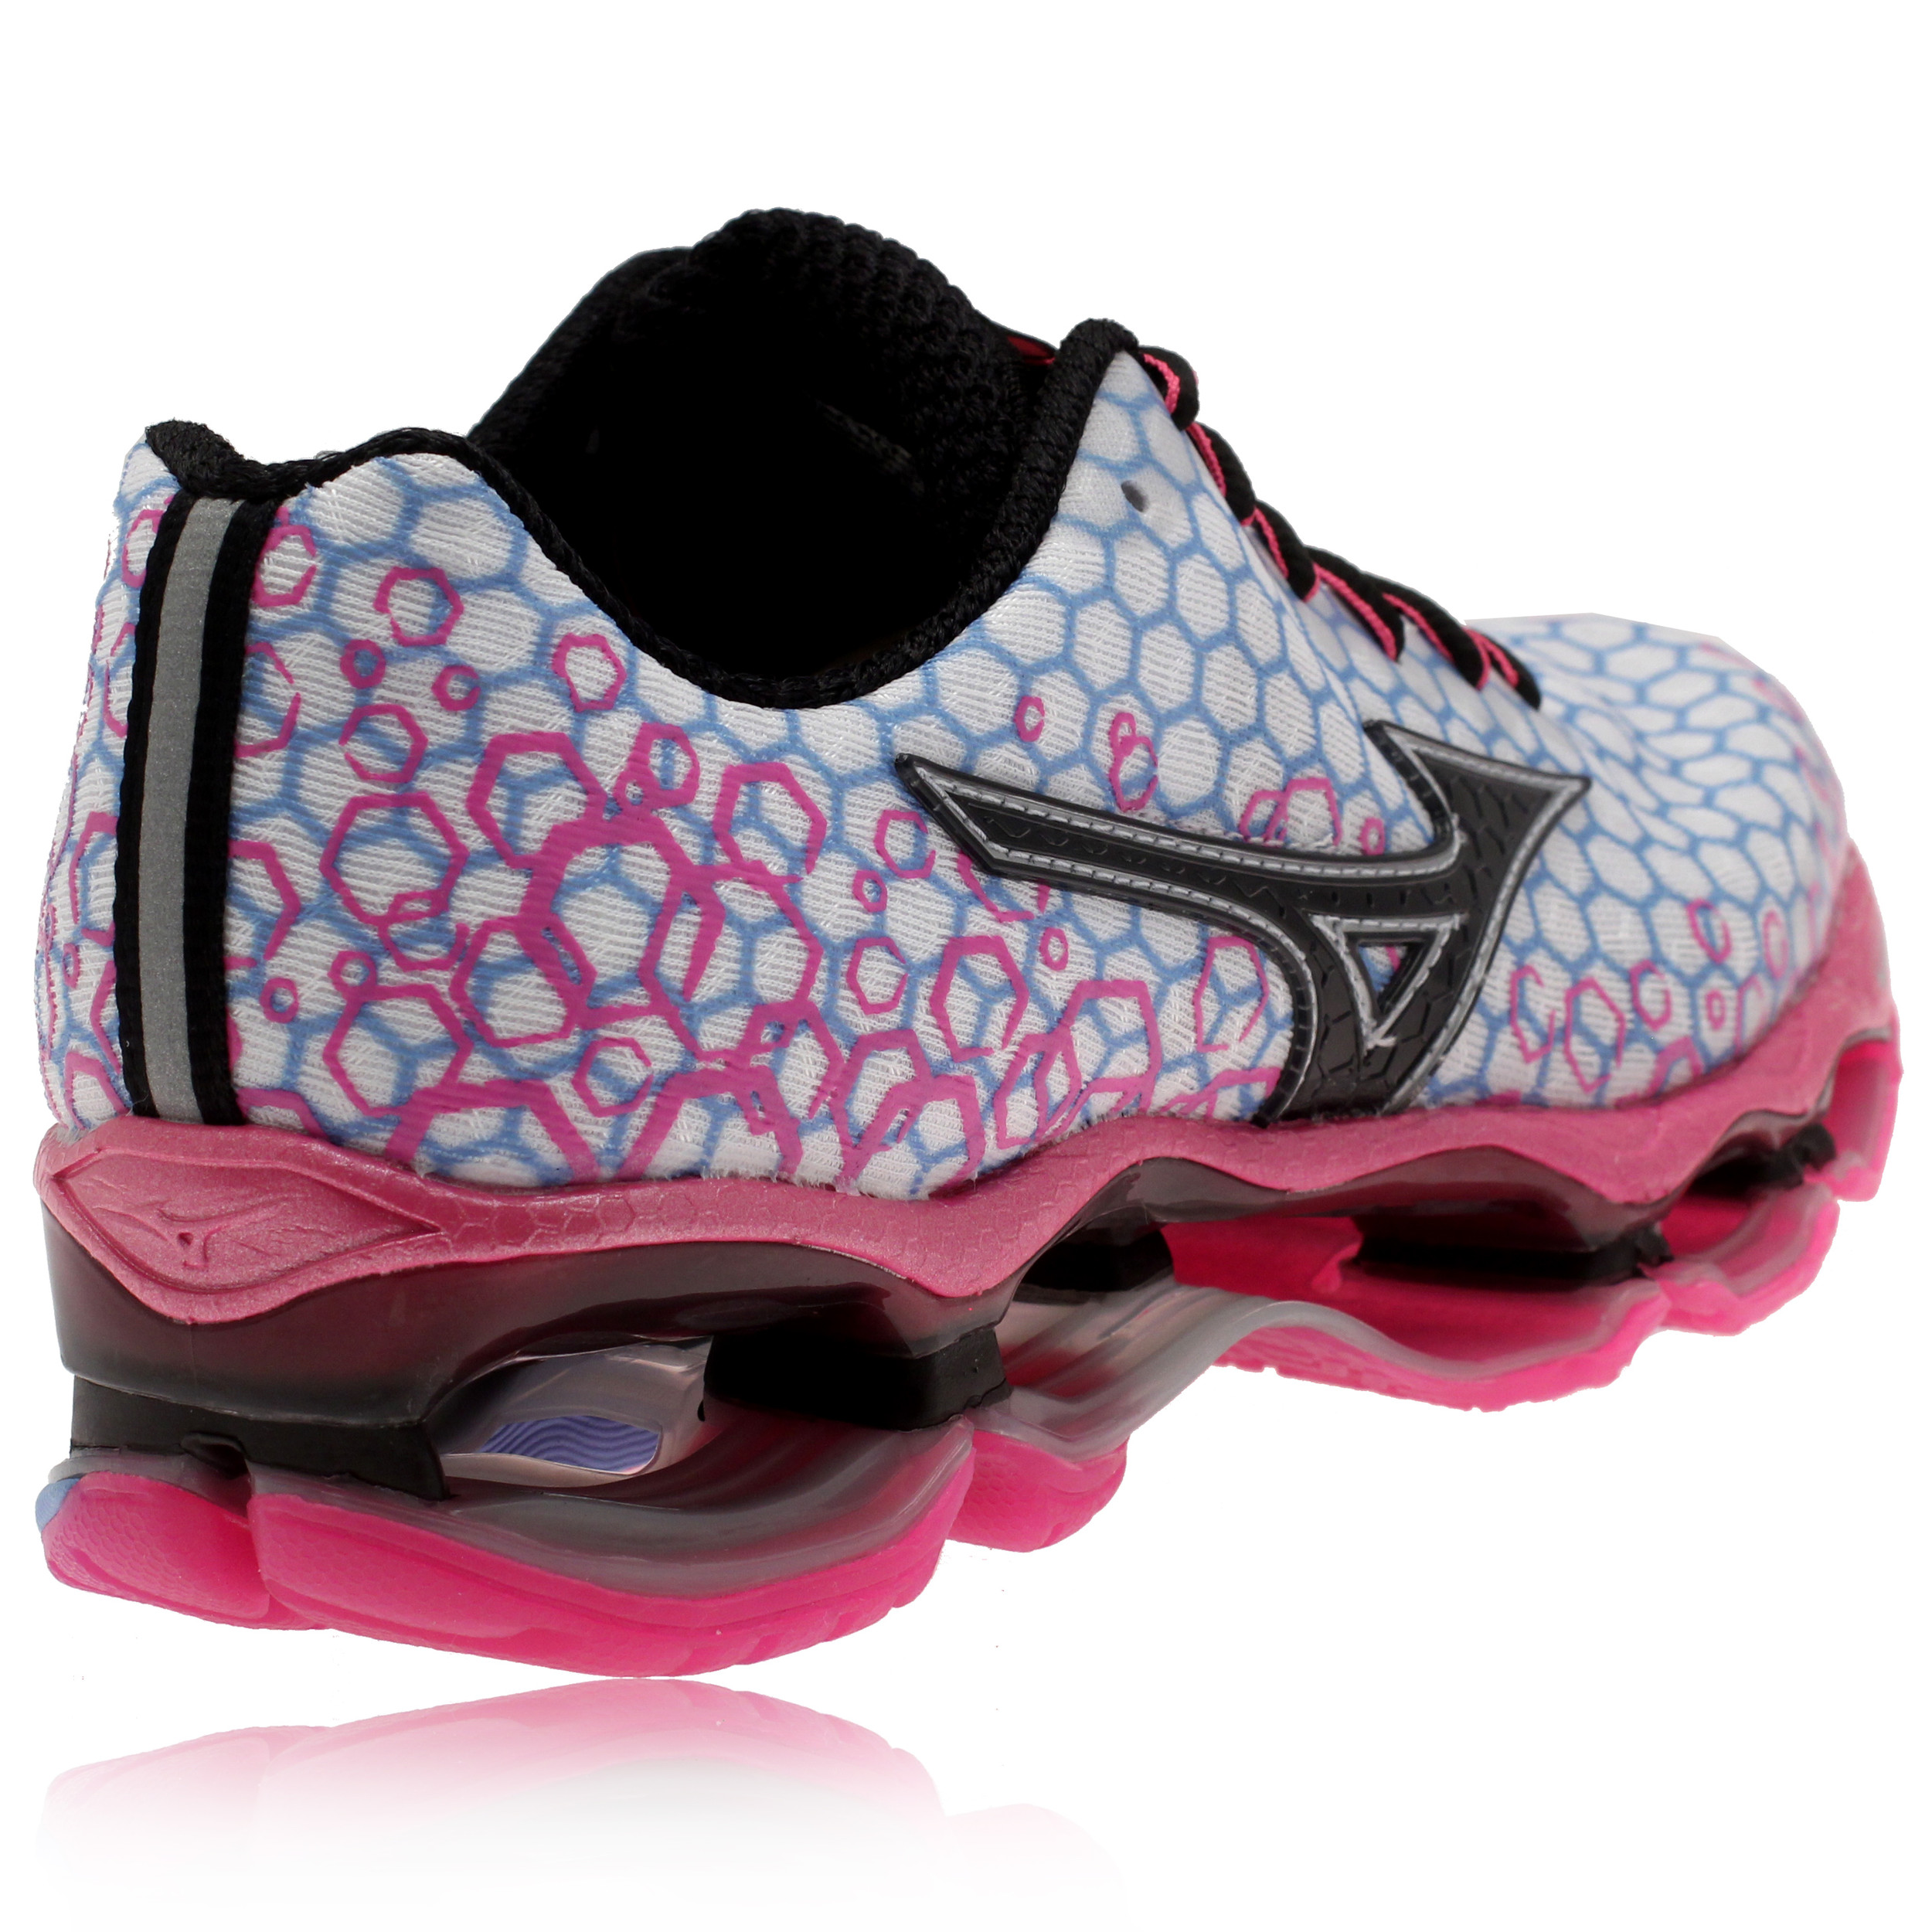 321c2c0be614 buy mizuno wave prophecy 4 | ventes flash